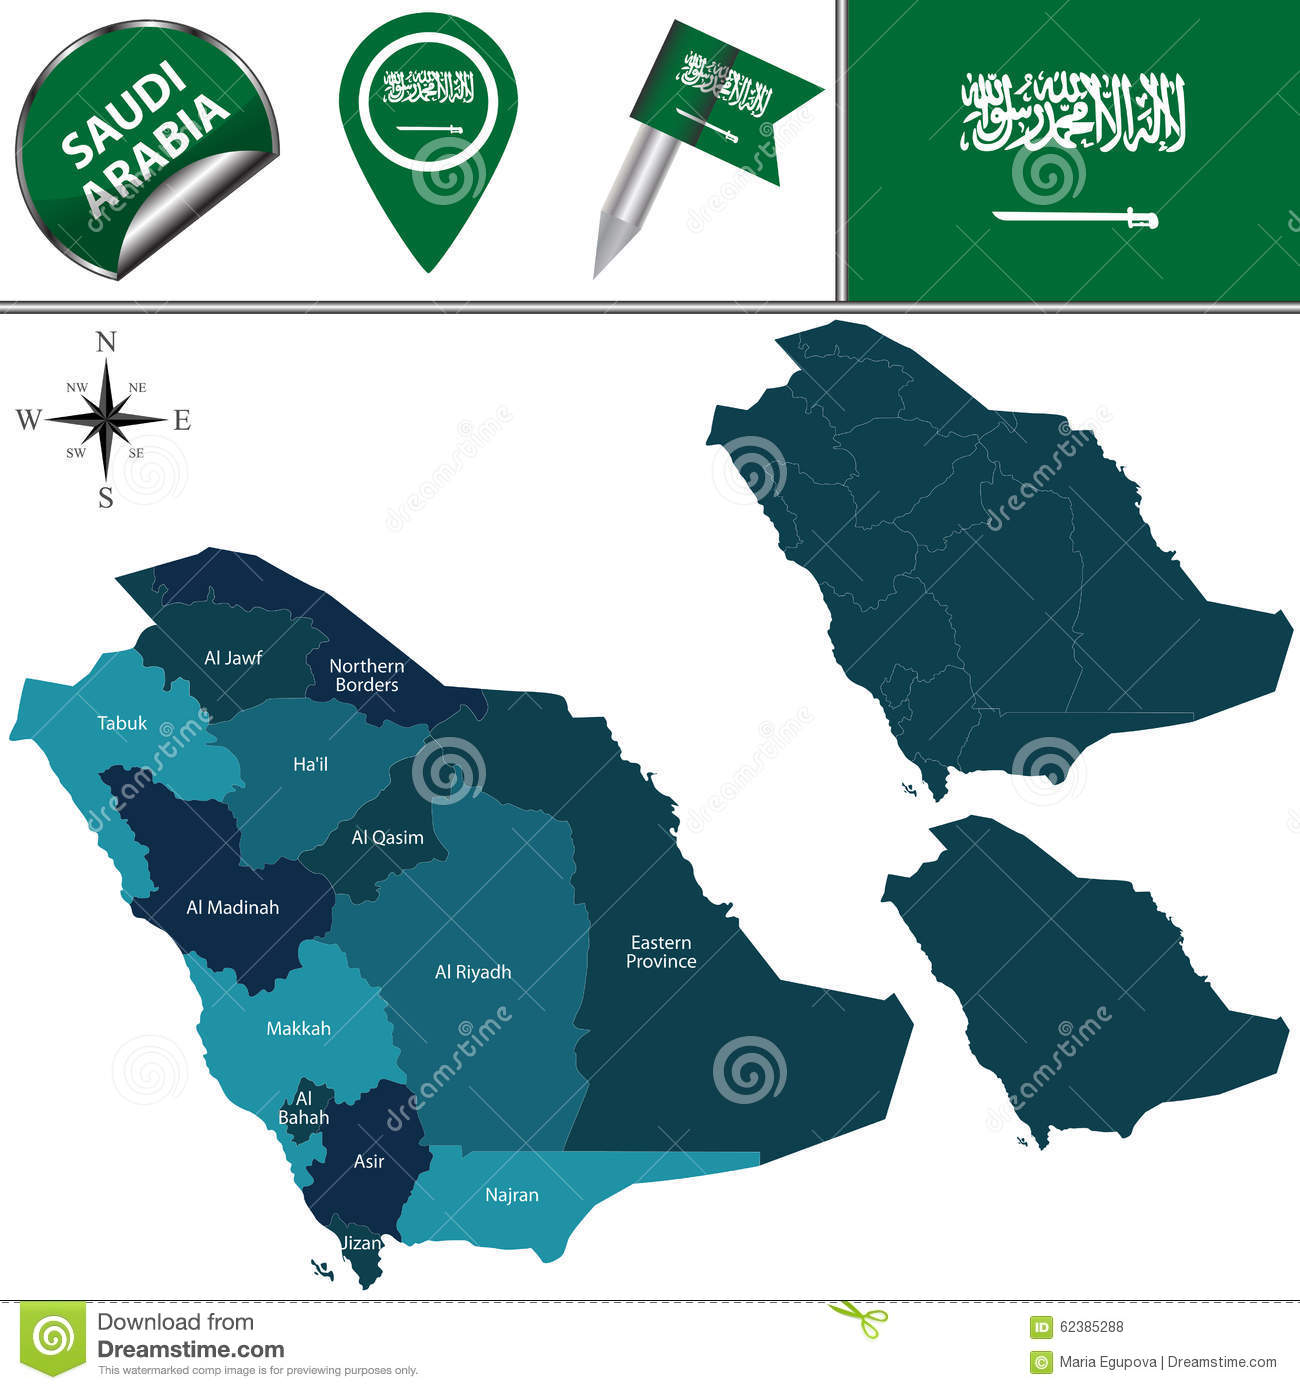 Map of Saudi Arabia stock vector. Illustration of arabia ... Map Of Arabia on map of arabian desert, red sea, persian gulf, horn of africa, map of sinai peninsula, map of israel, map of oman, map of malaysia, map of islamic empire, saudi arabia, map of south africa, arabian sea, map of iran, map of pakistan, map of assyria, map of syria, arab world, map of persia, arabic language, map of judea, sinai peninsula, middle east, map of the arabian peninsula, map of india, map of egypt, map of asia, map of uae, map of east africa, strait of hormuz, iberian peninsula, zagros mountains,